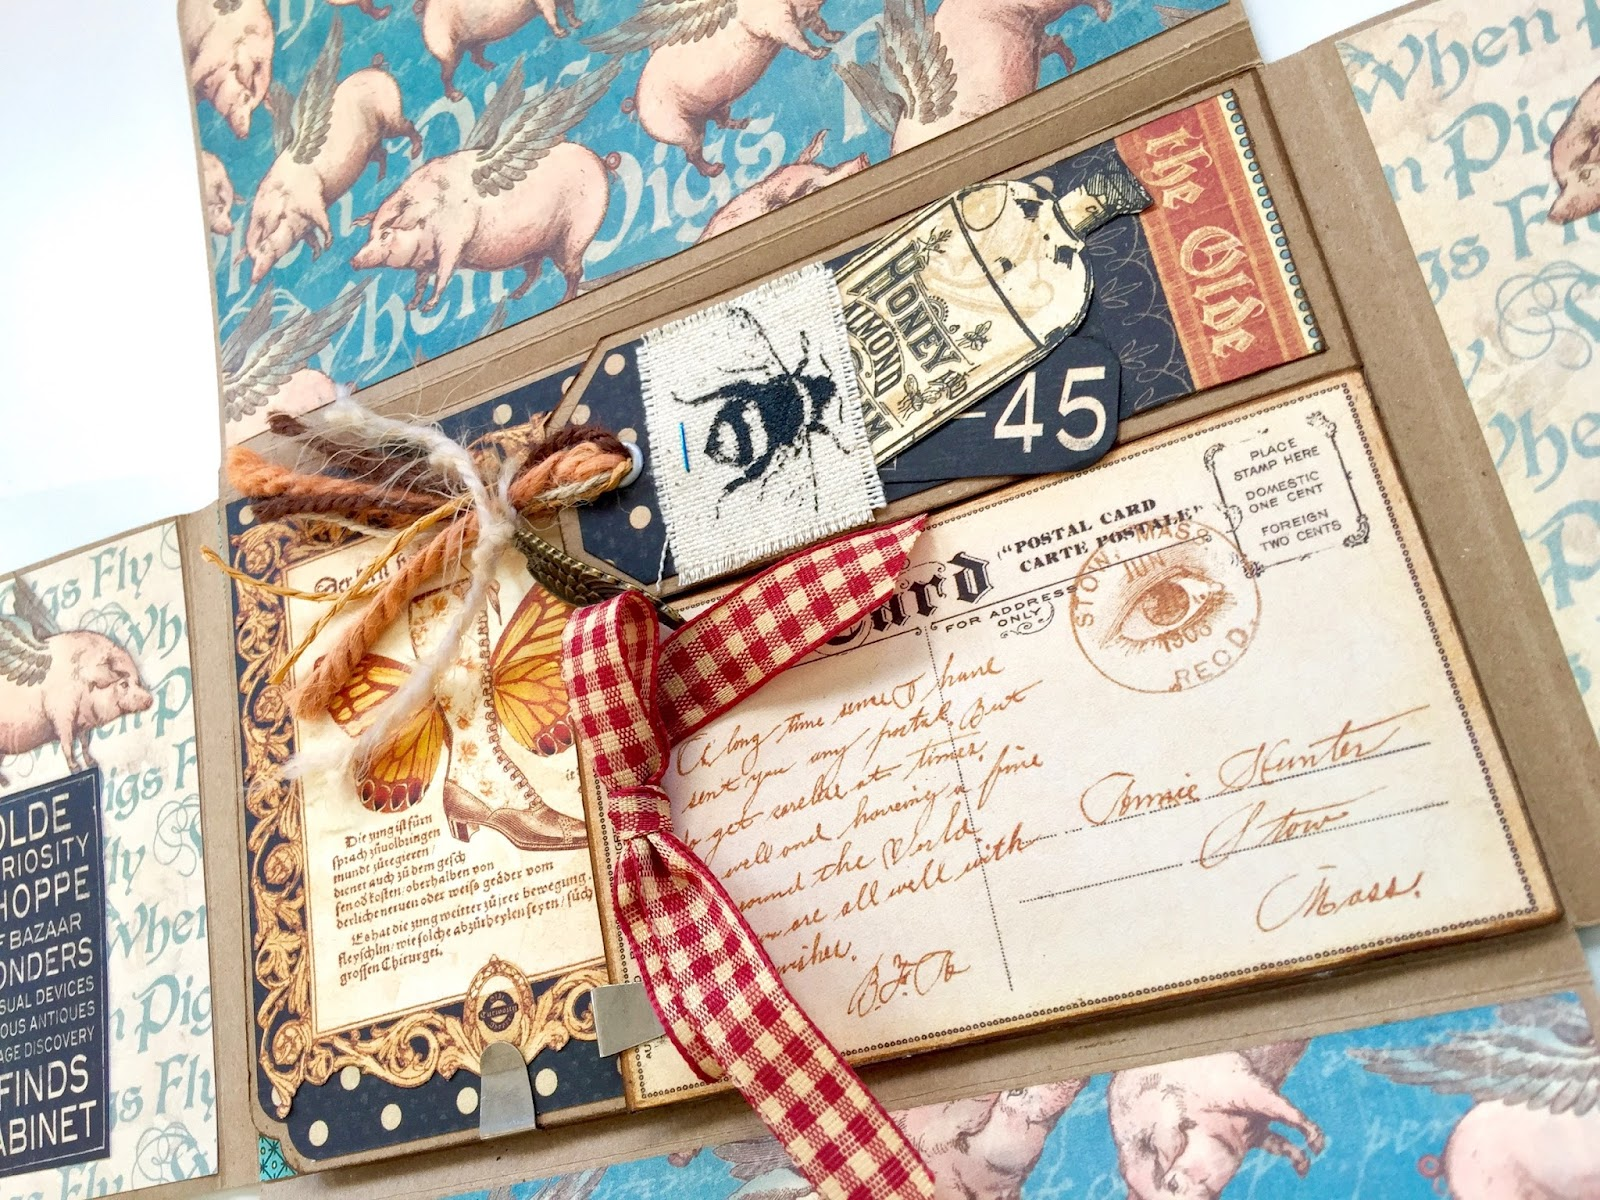 Olde Curiosity Shoppe Flip Flap Mini Album by Marina Blaukitchen Product by Graphic 45 photo 8.jpg